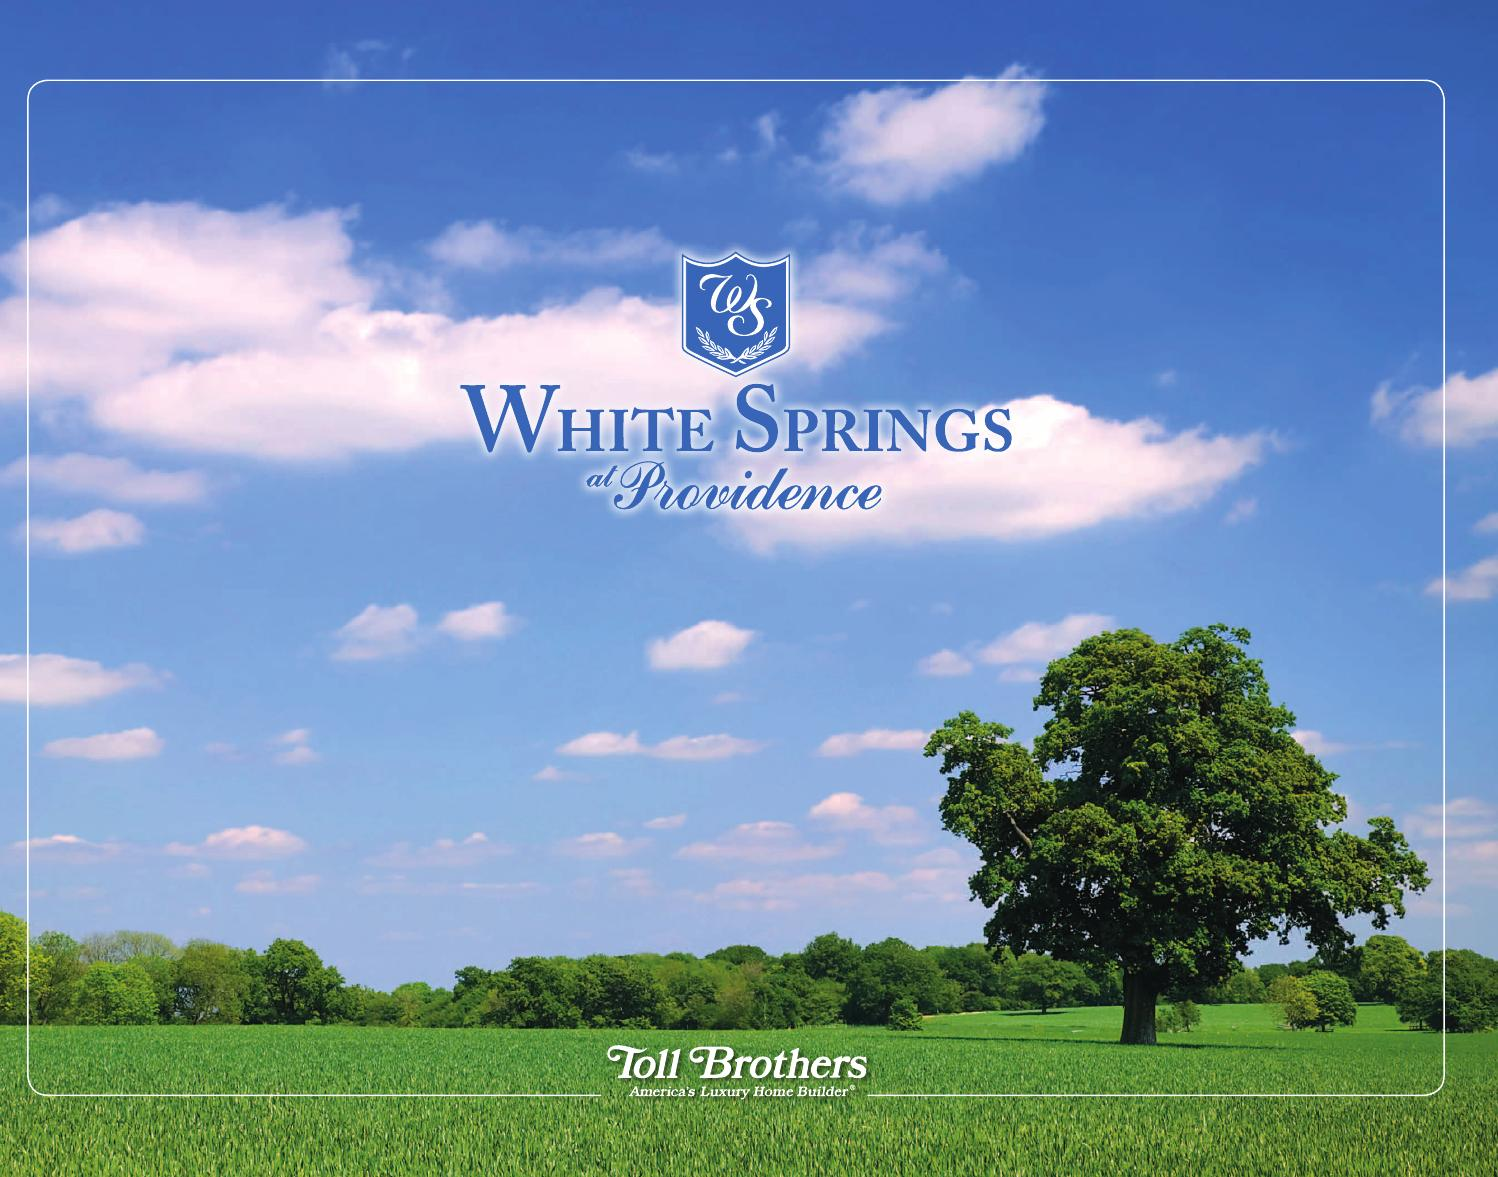 White Springs At Providence >> White Springs At Providence Lifestyle Brochure By Toll